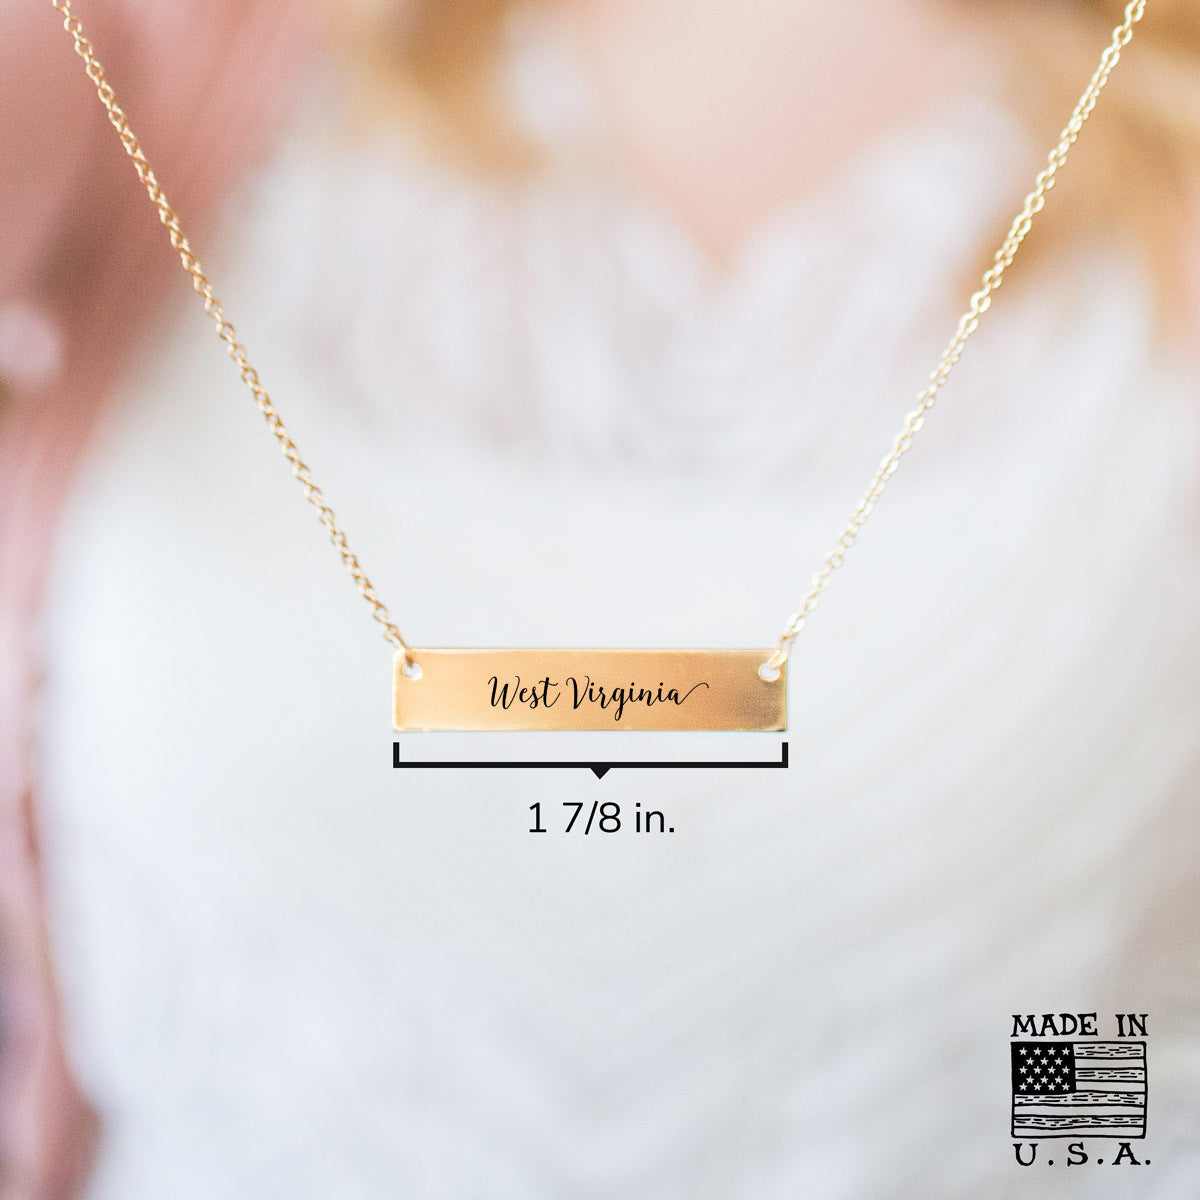 West Virginia Gold / Silver Bar Necklace